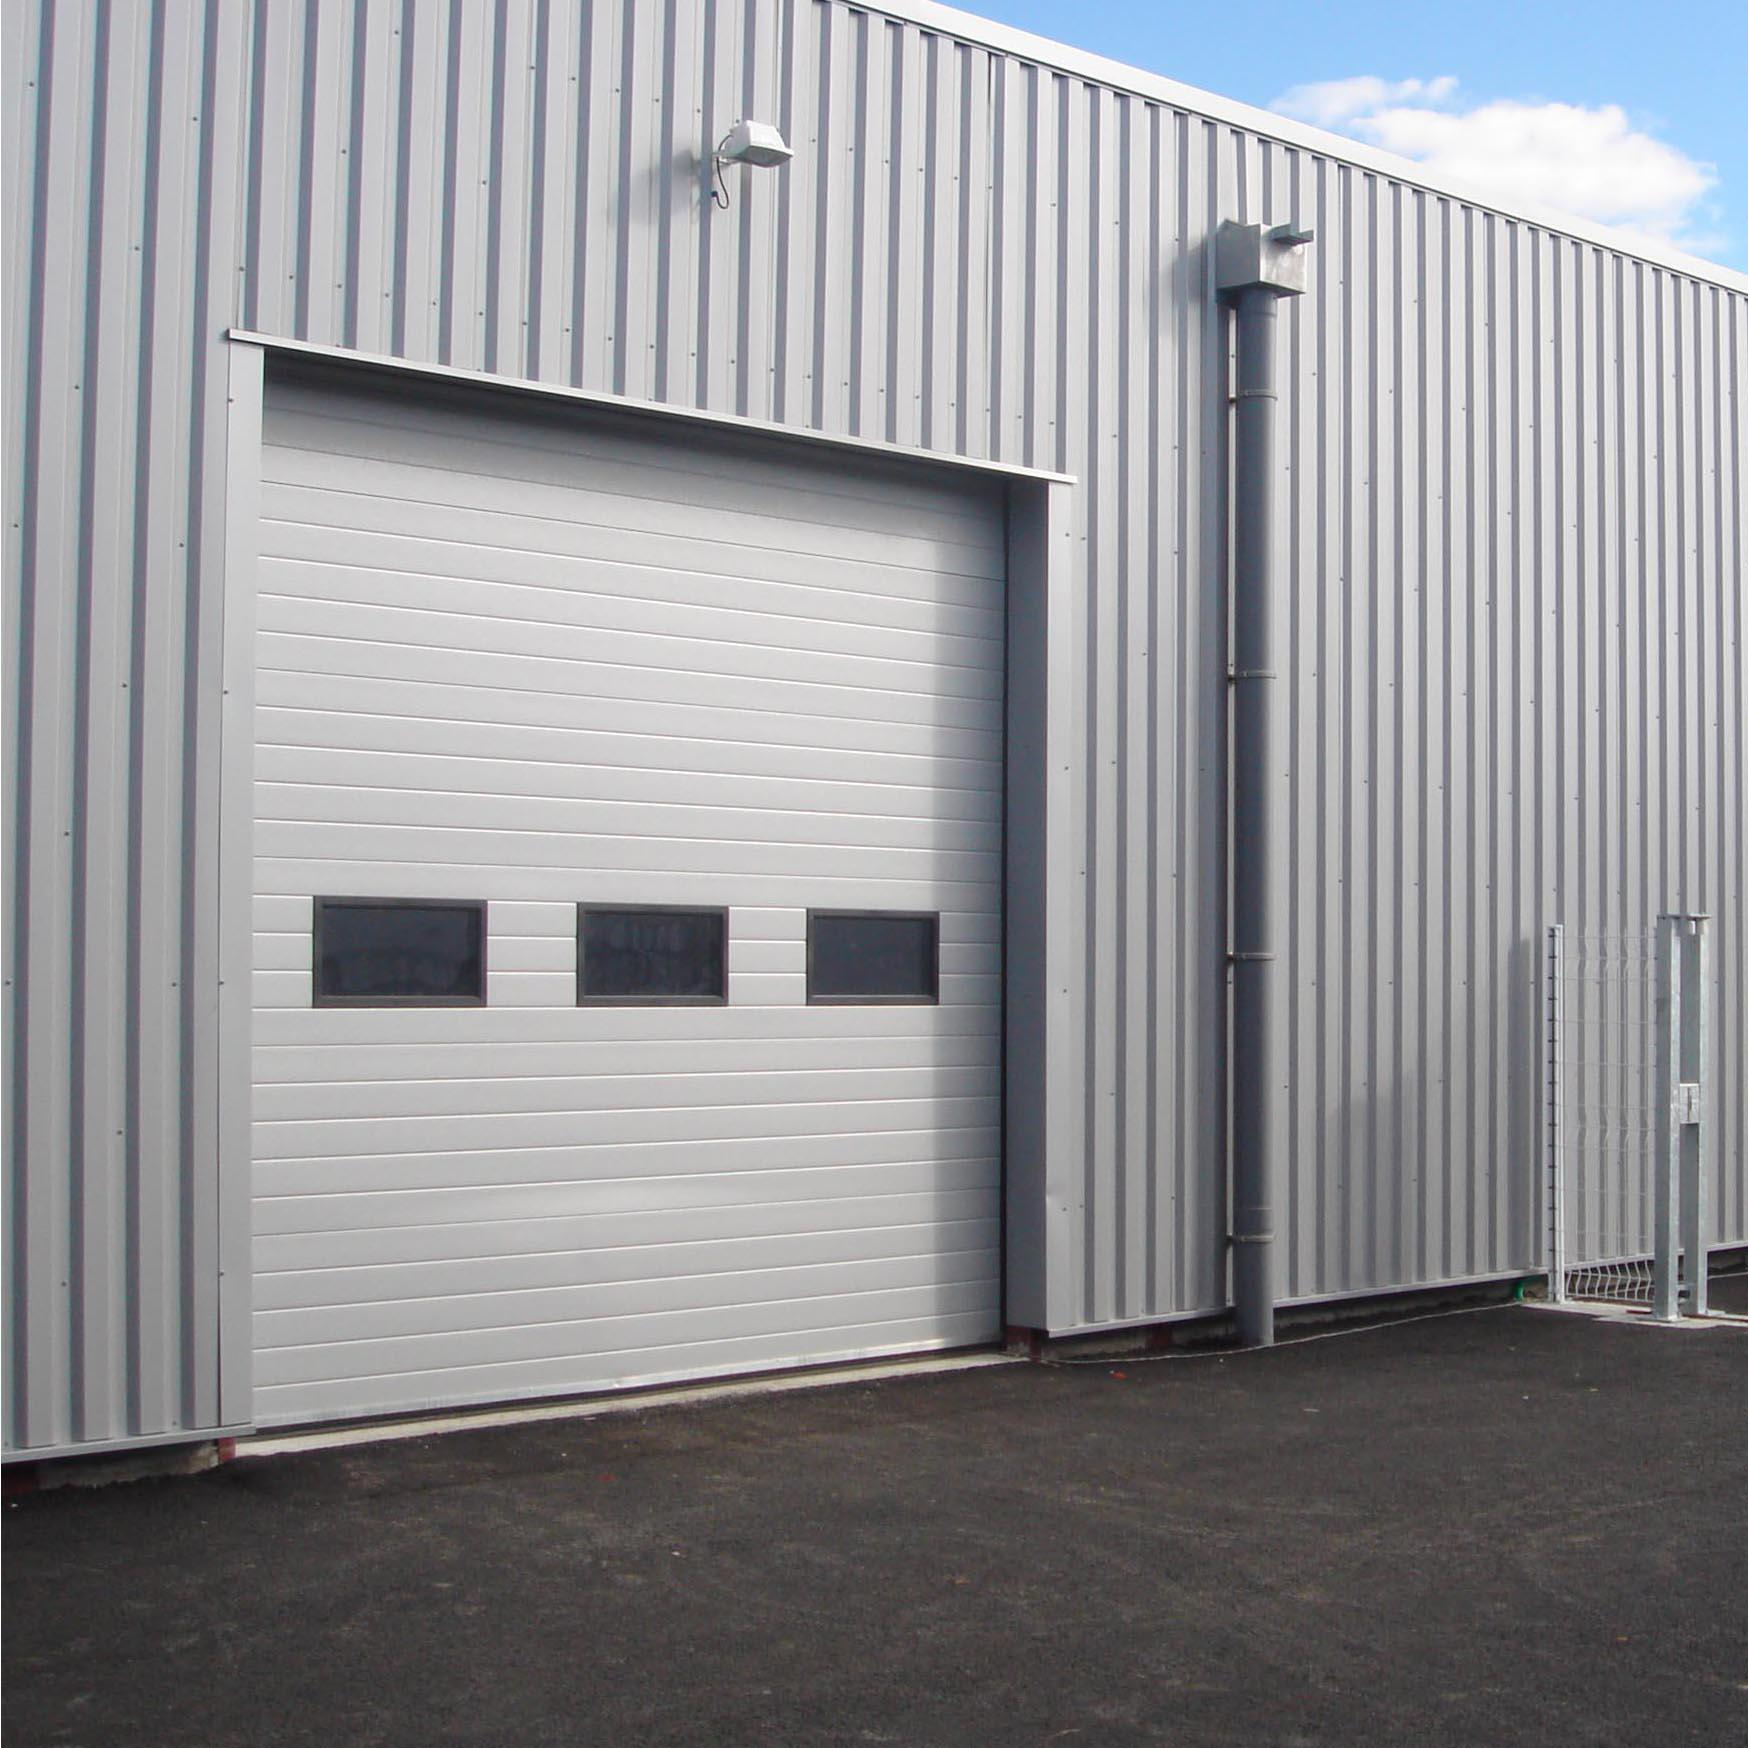 Ready To Ship Vertical Electrical Factory Price Industrial Lifting Door for Factory Or Warehouse